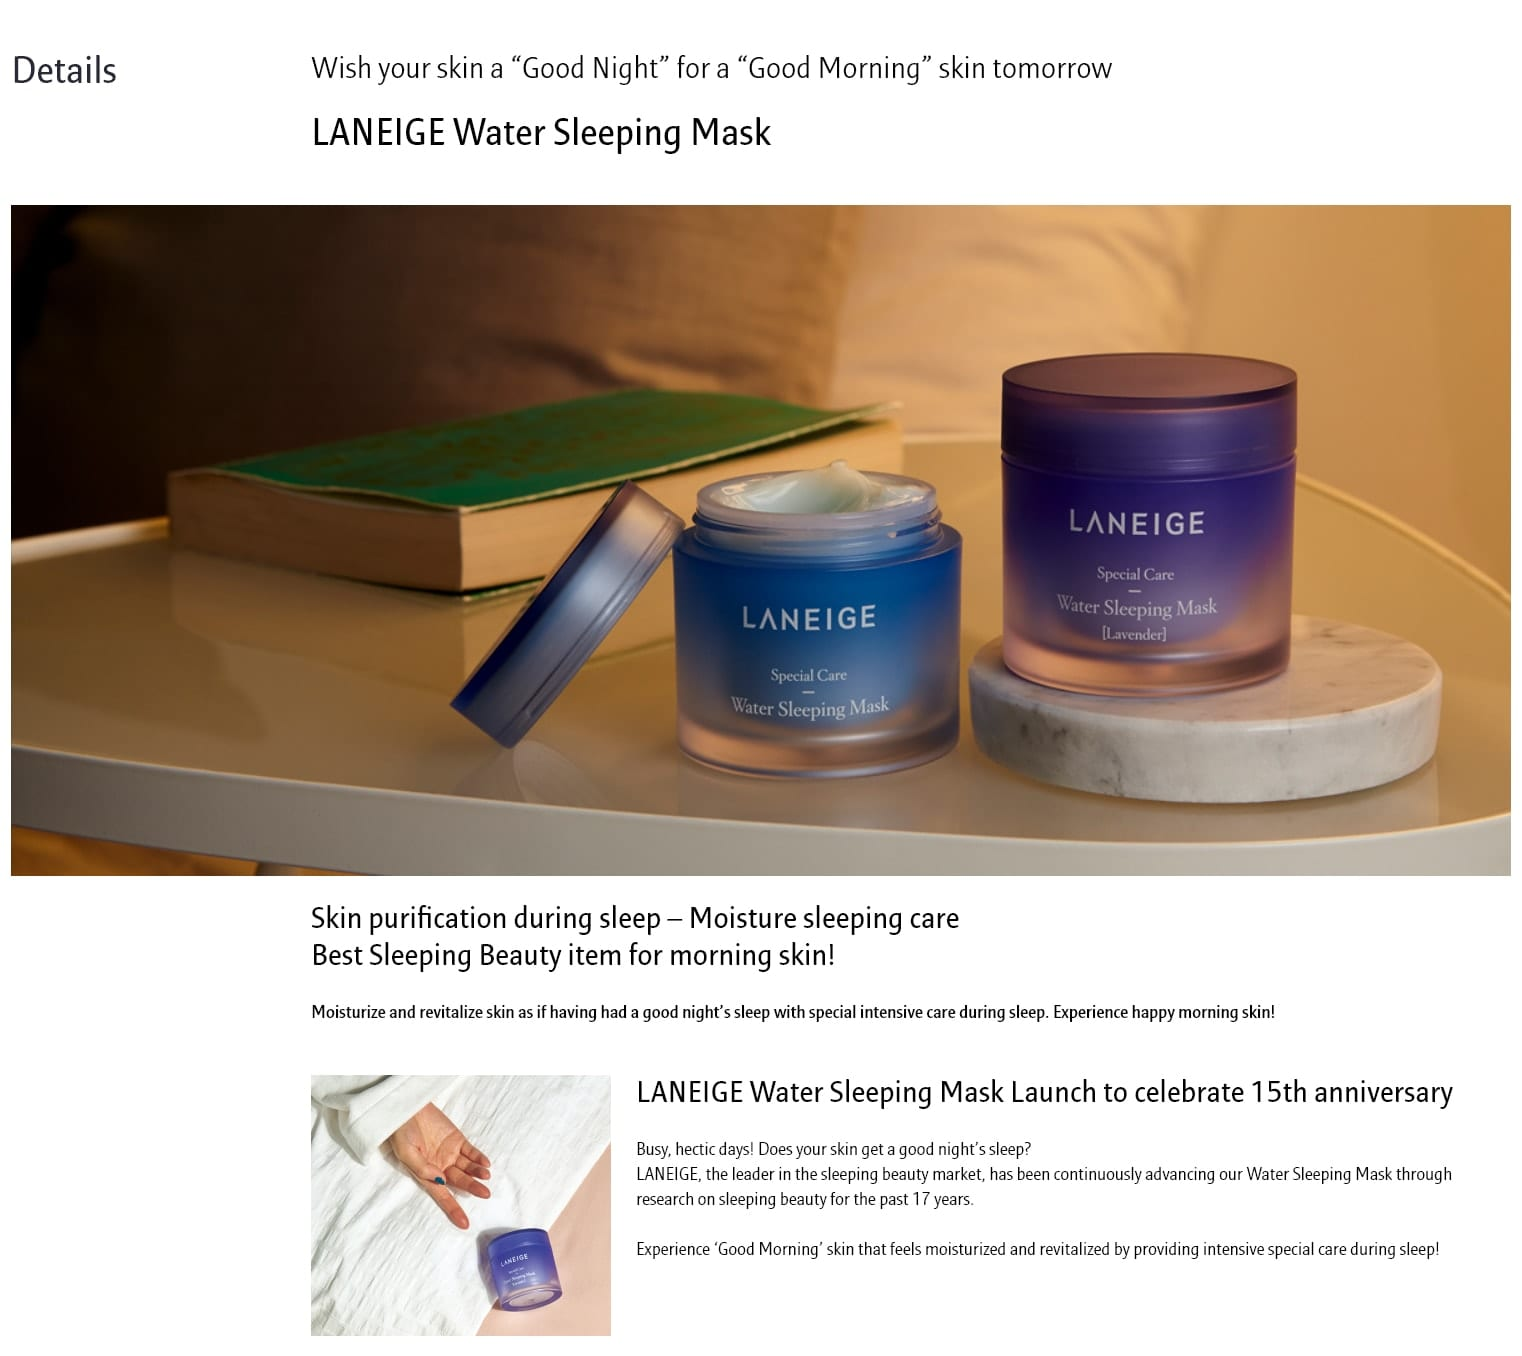 Laneige Water Sleeping Mask (Lavender) - details